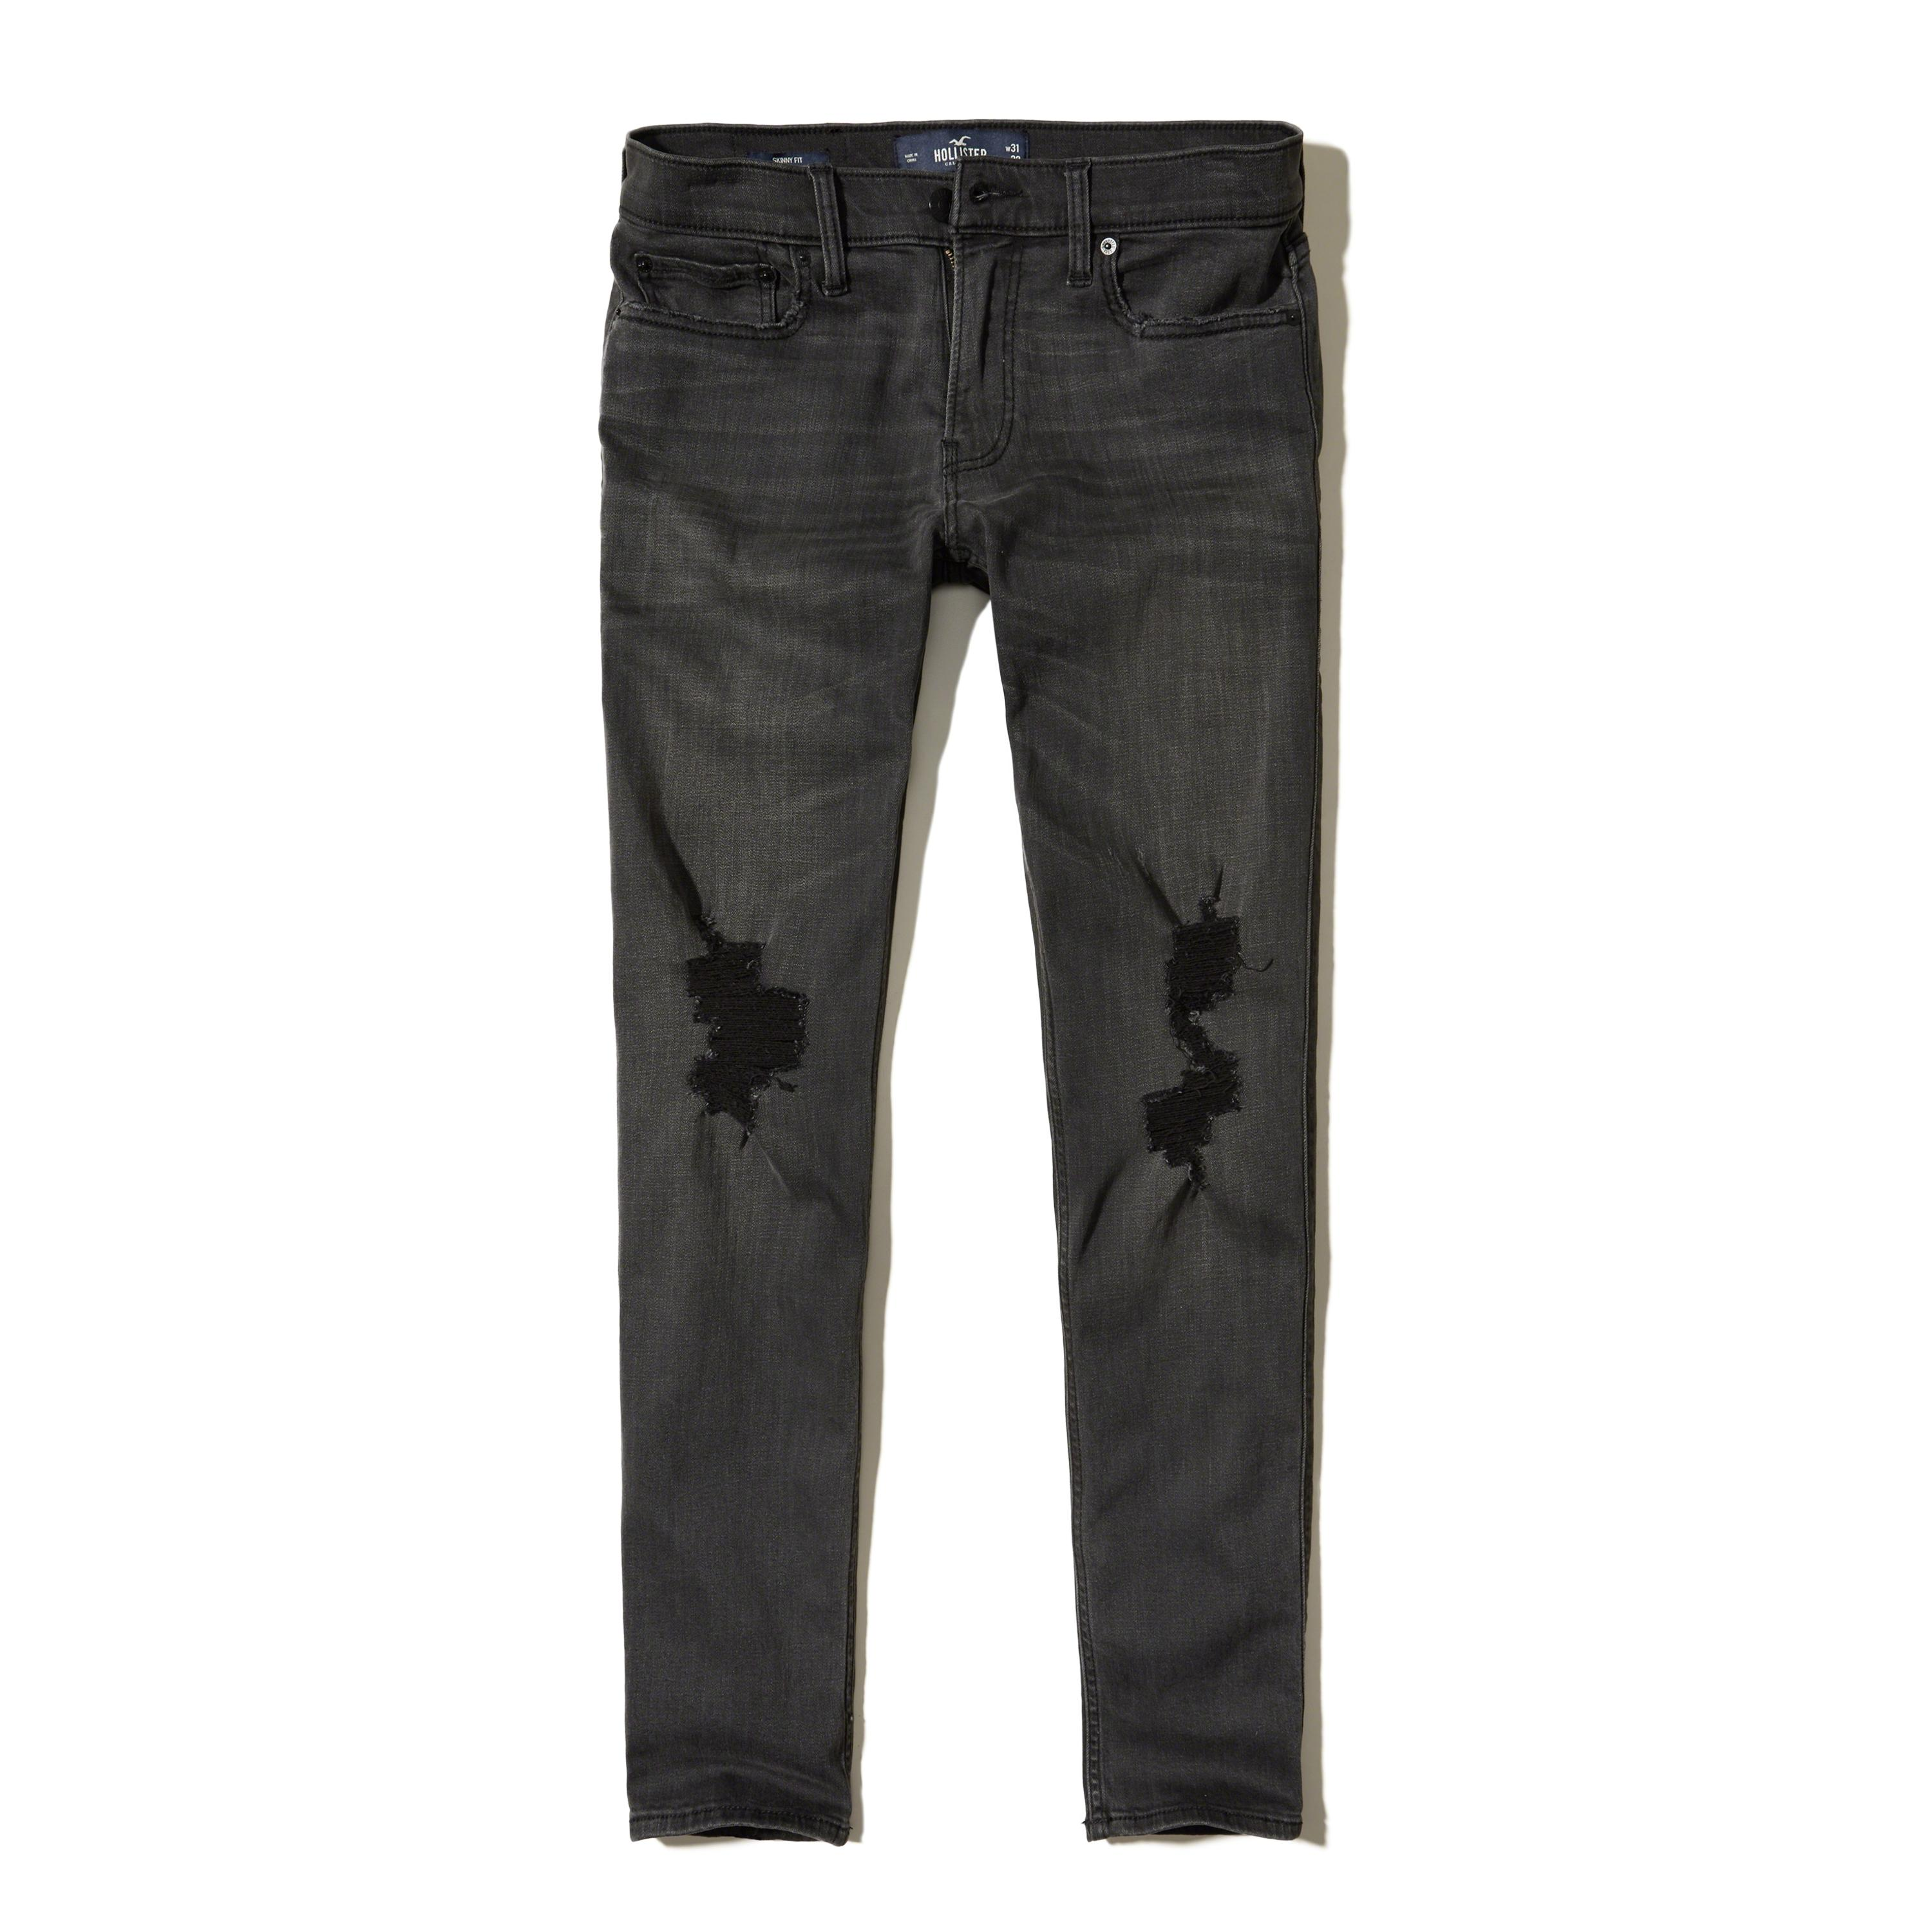 hollister dark jeans for men - photo #8